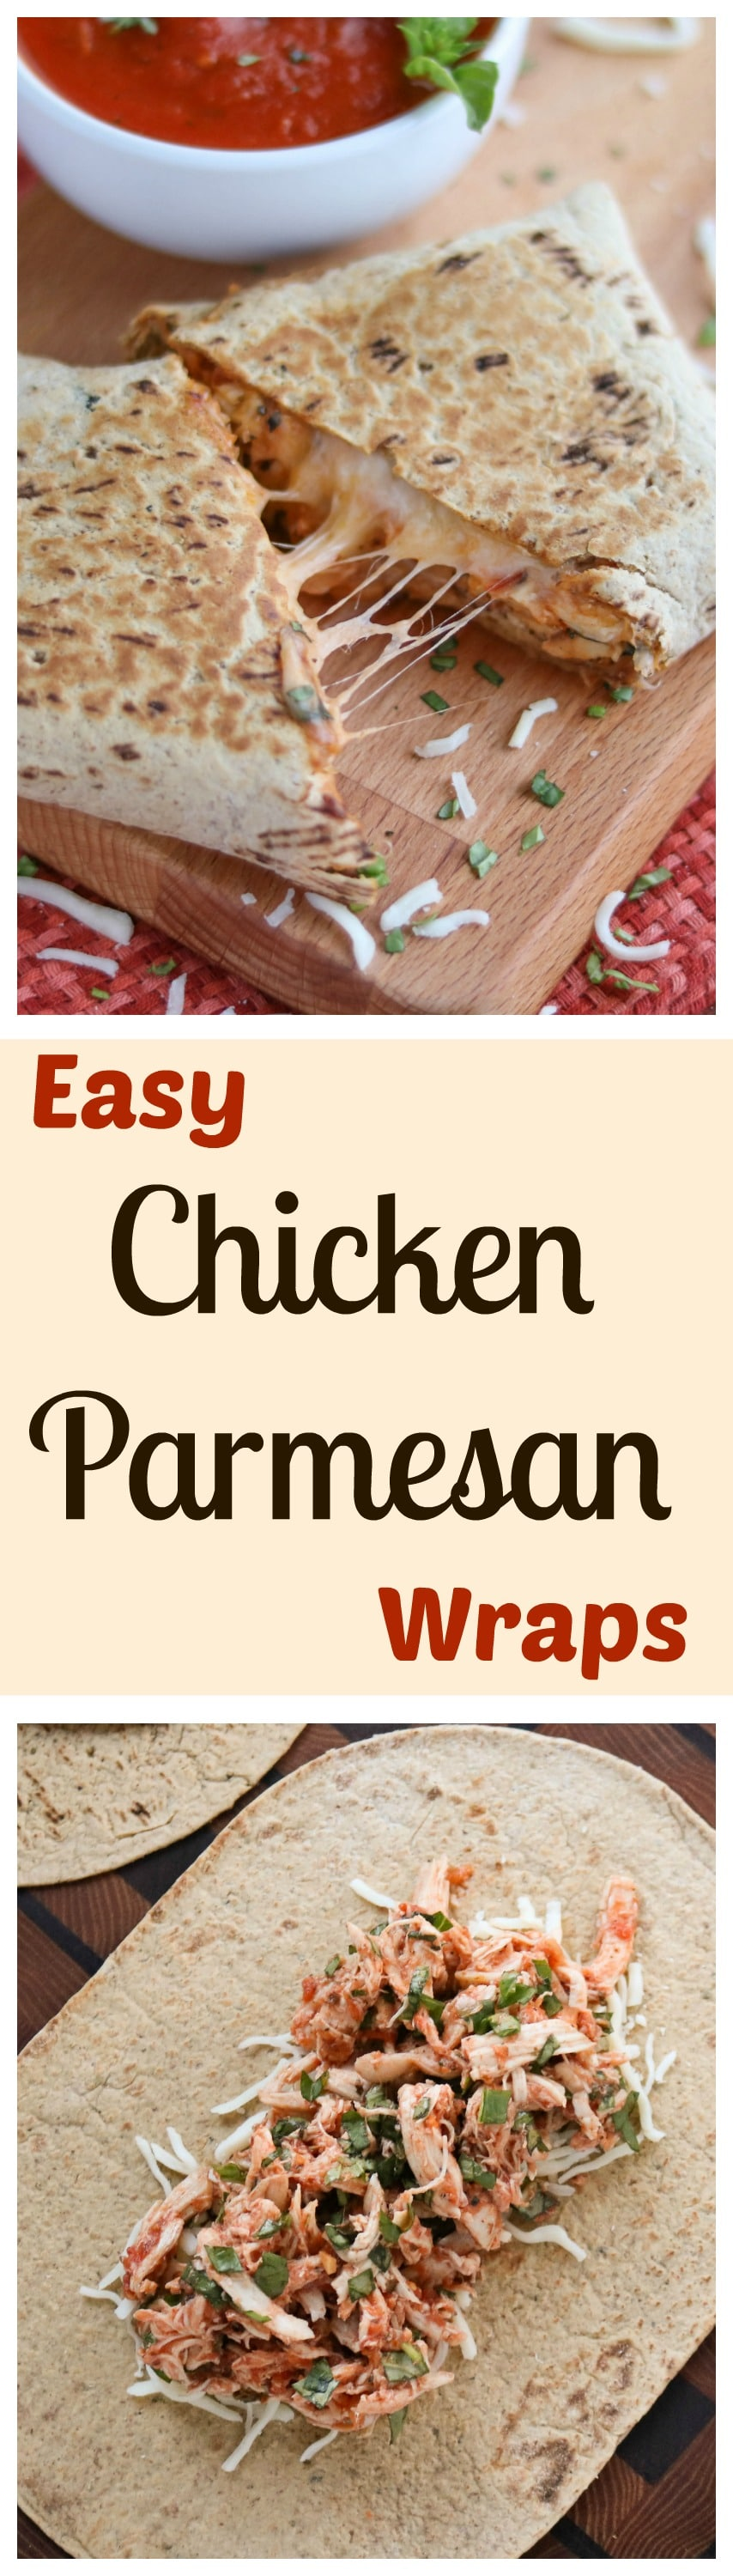 Easy chicken parmesan wraps two healthy kitchens easy chicken parmesan wraps ad twohealthykitchens forumfinder Images